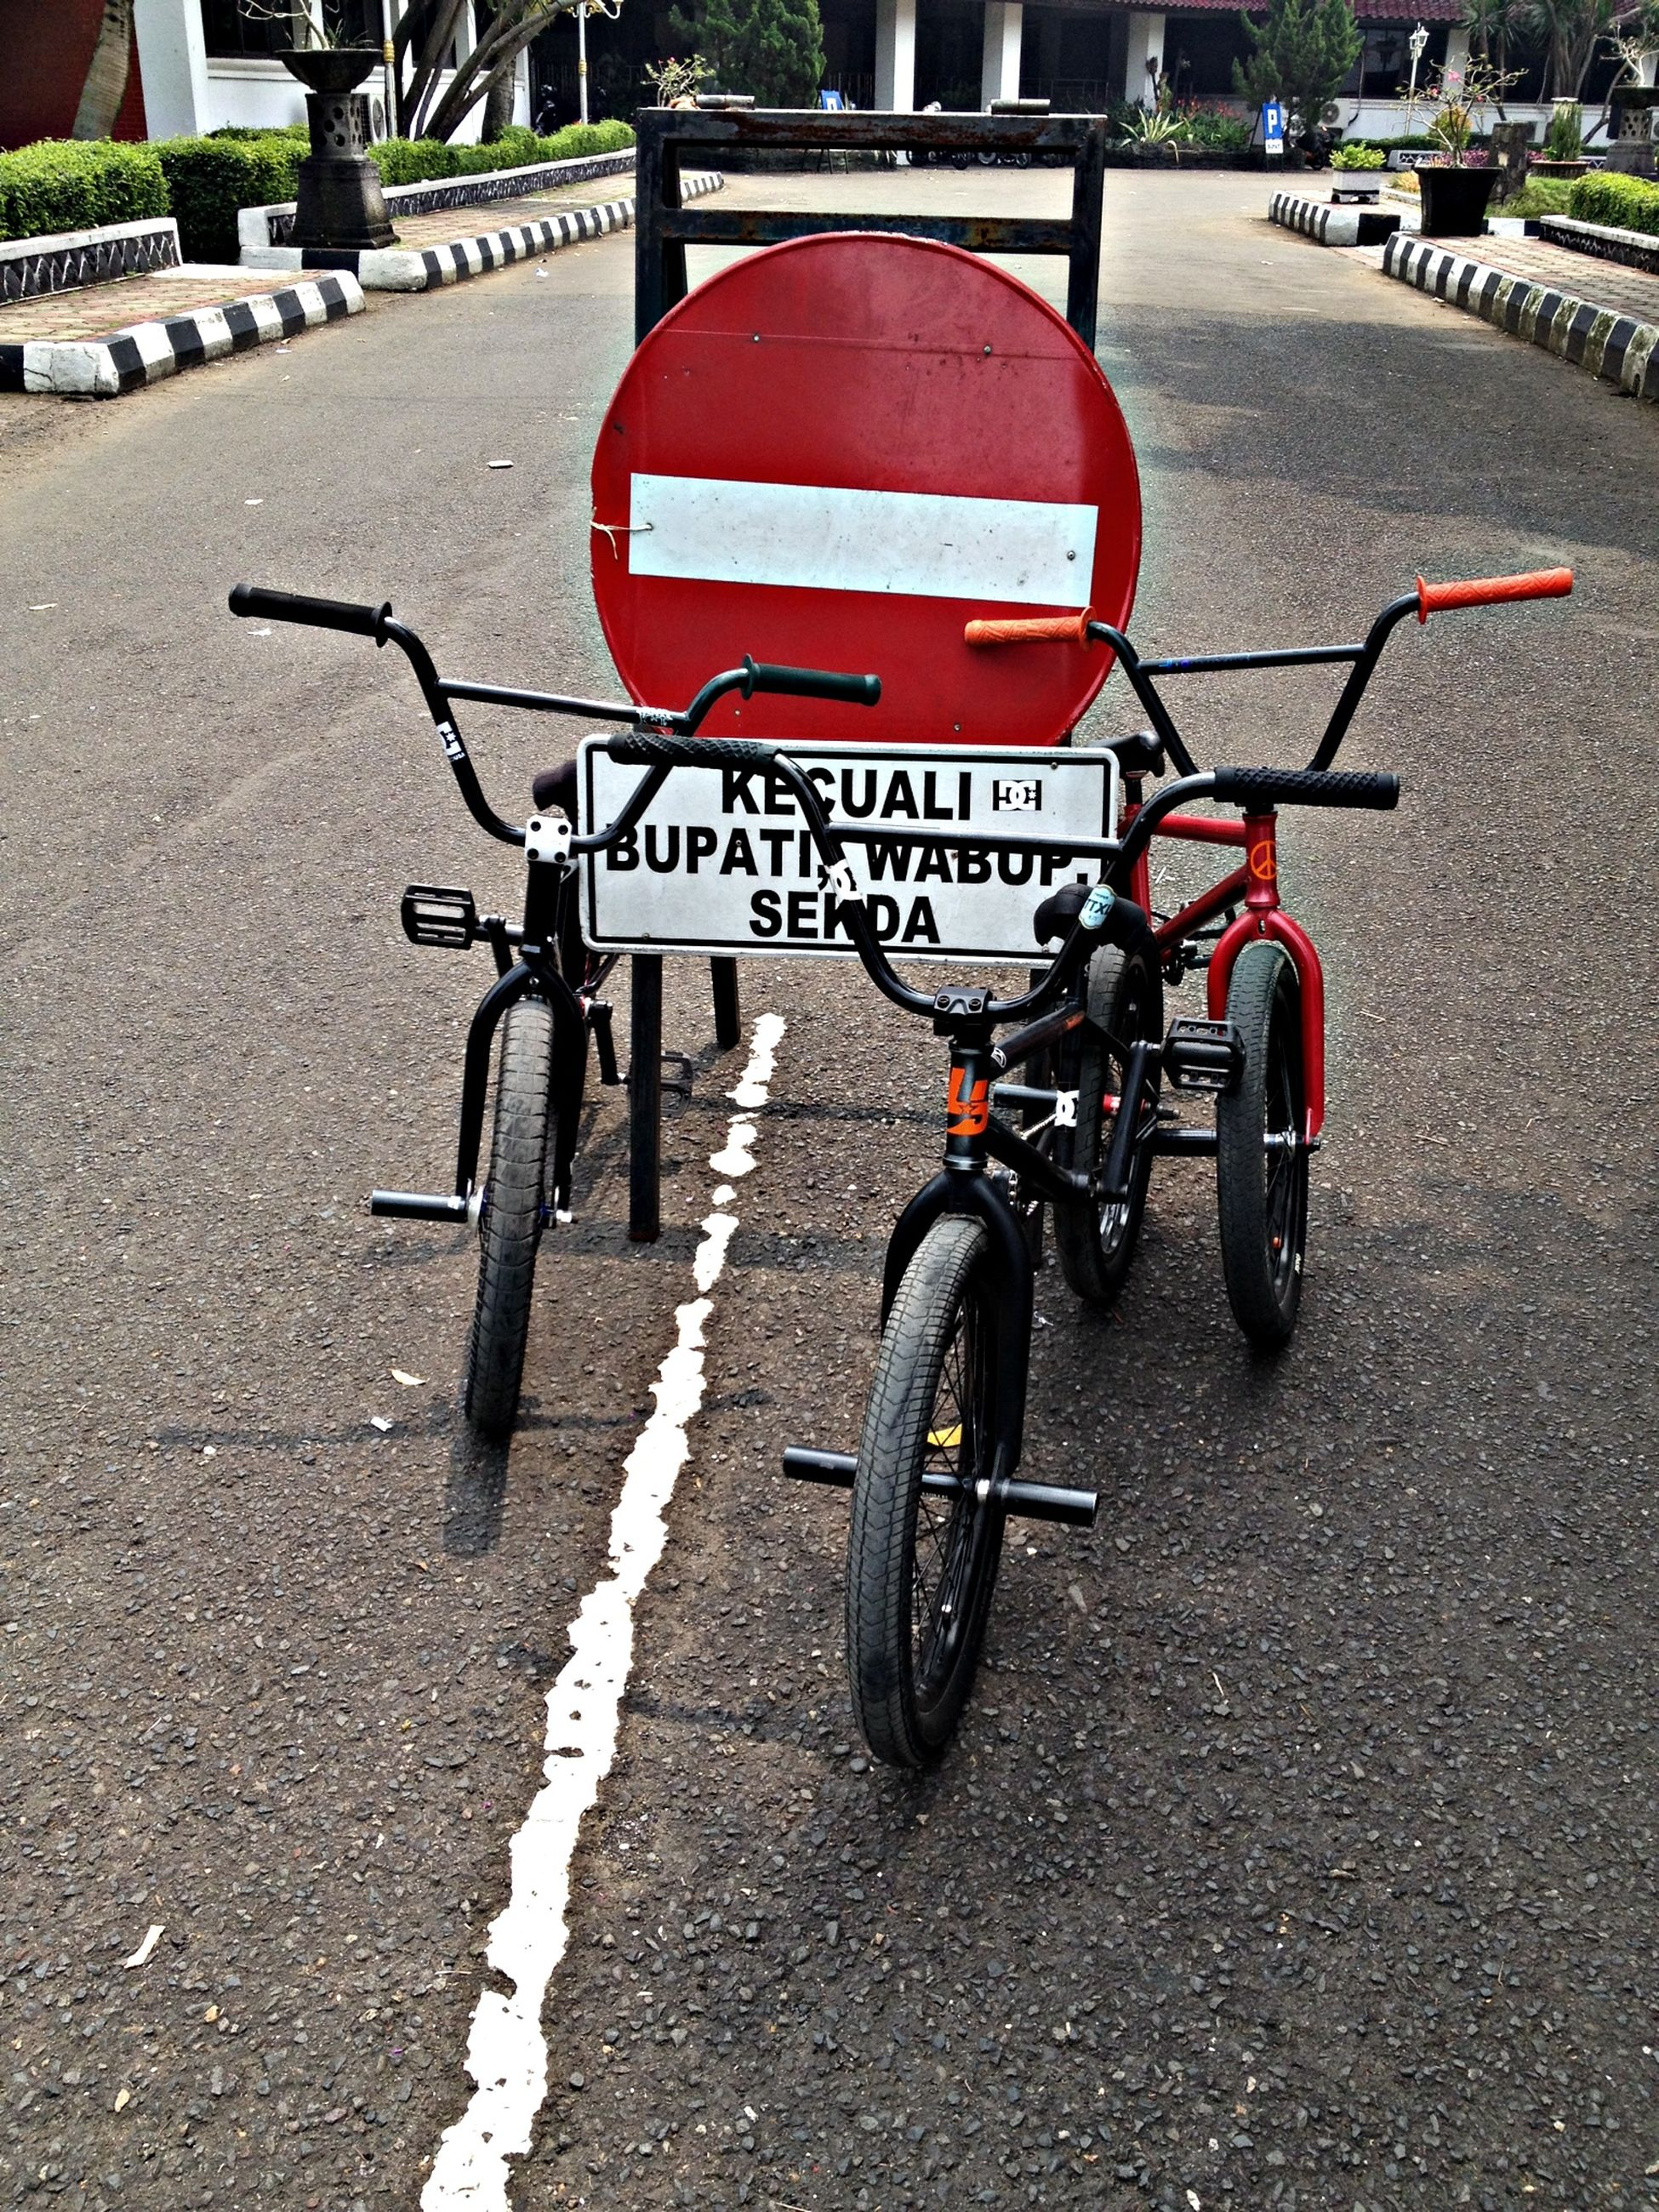 transportation, mode of transport, land vehicle, bicycle, street, road, road marking, asphalt, car, stationary, parking, road sign, city, guidance, parked, motorcycle, day, the way forward, parking lot, outdoors